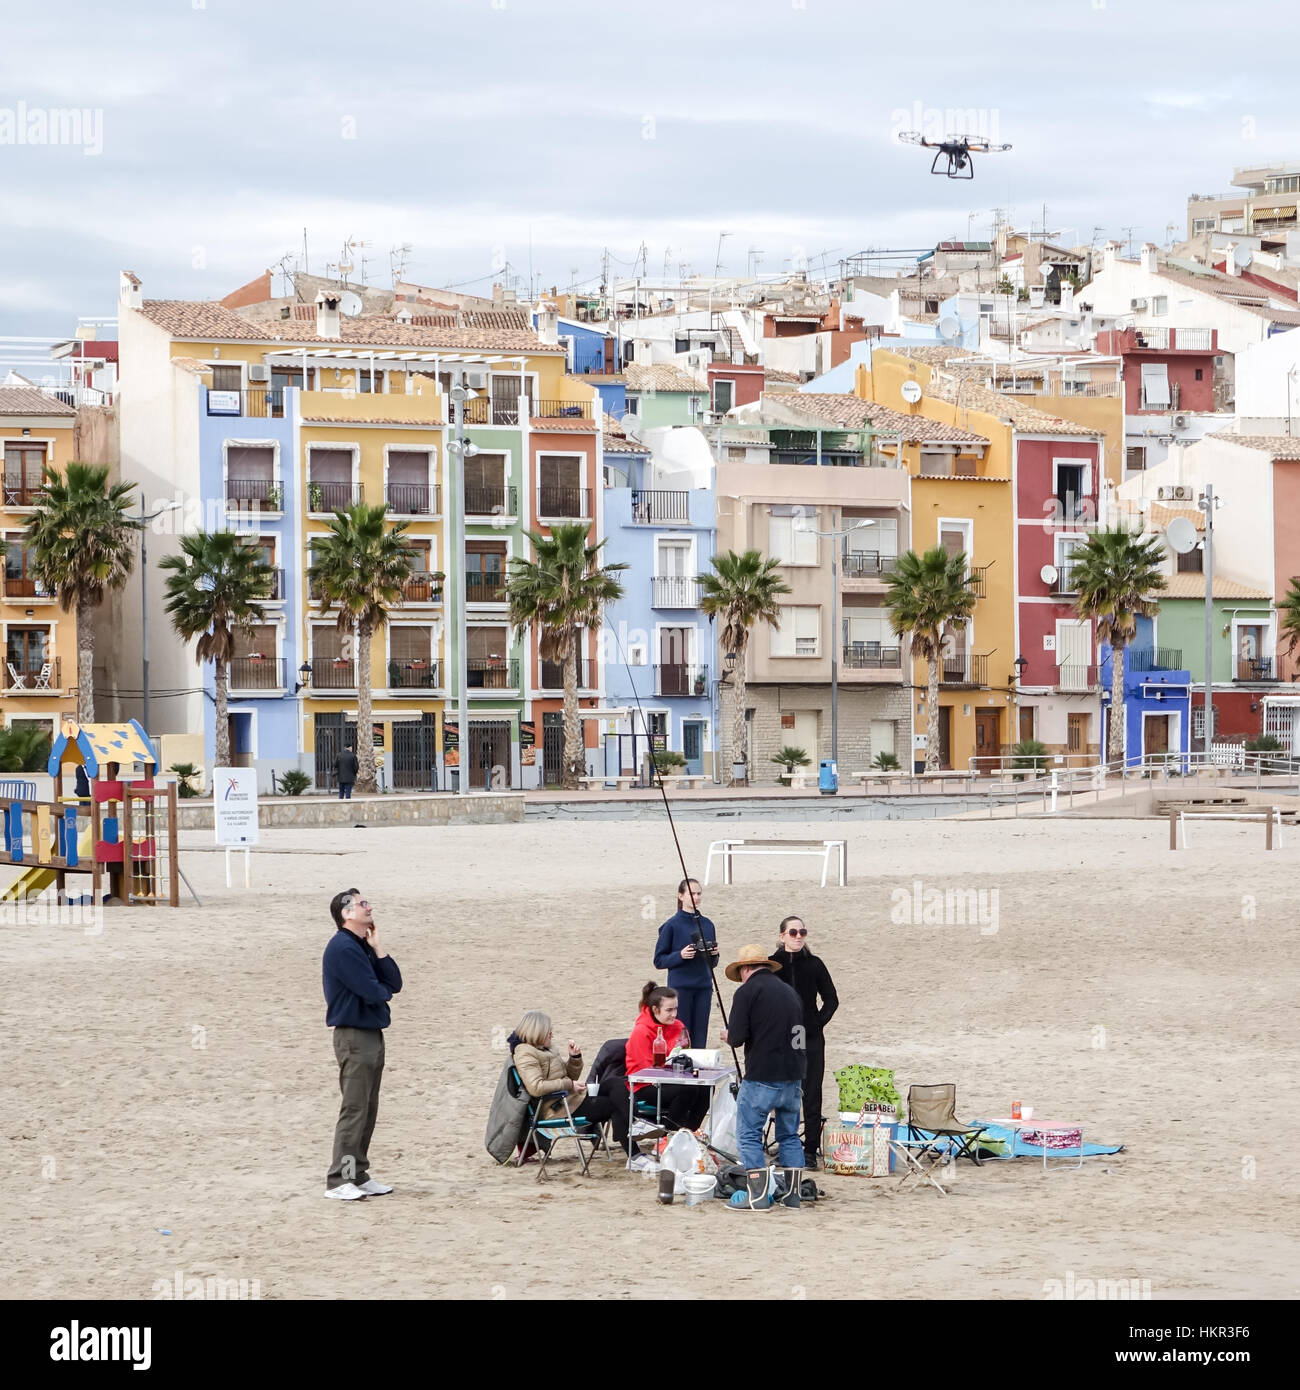 Family fishing on a beach in Villajoyosa, Alicante Province, Spain. Young girl flies quadcopter drone. - Stock Image